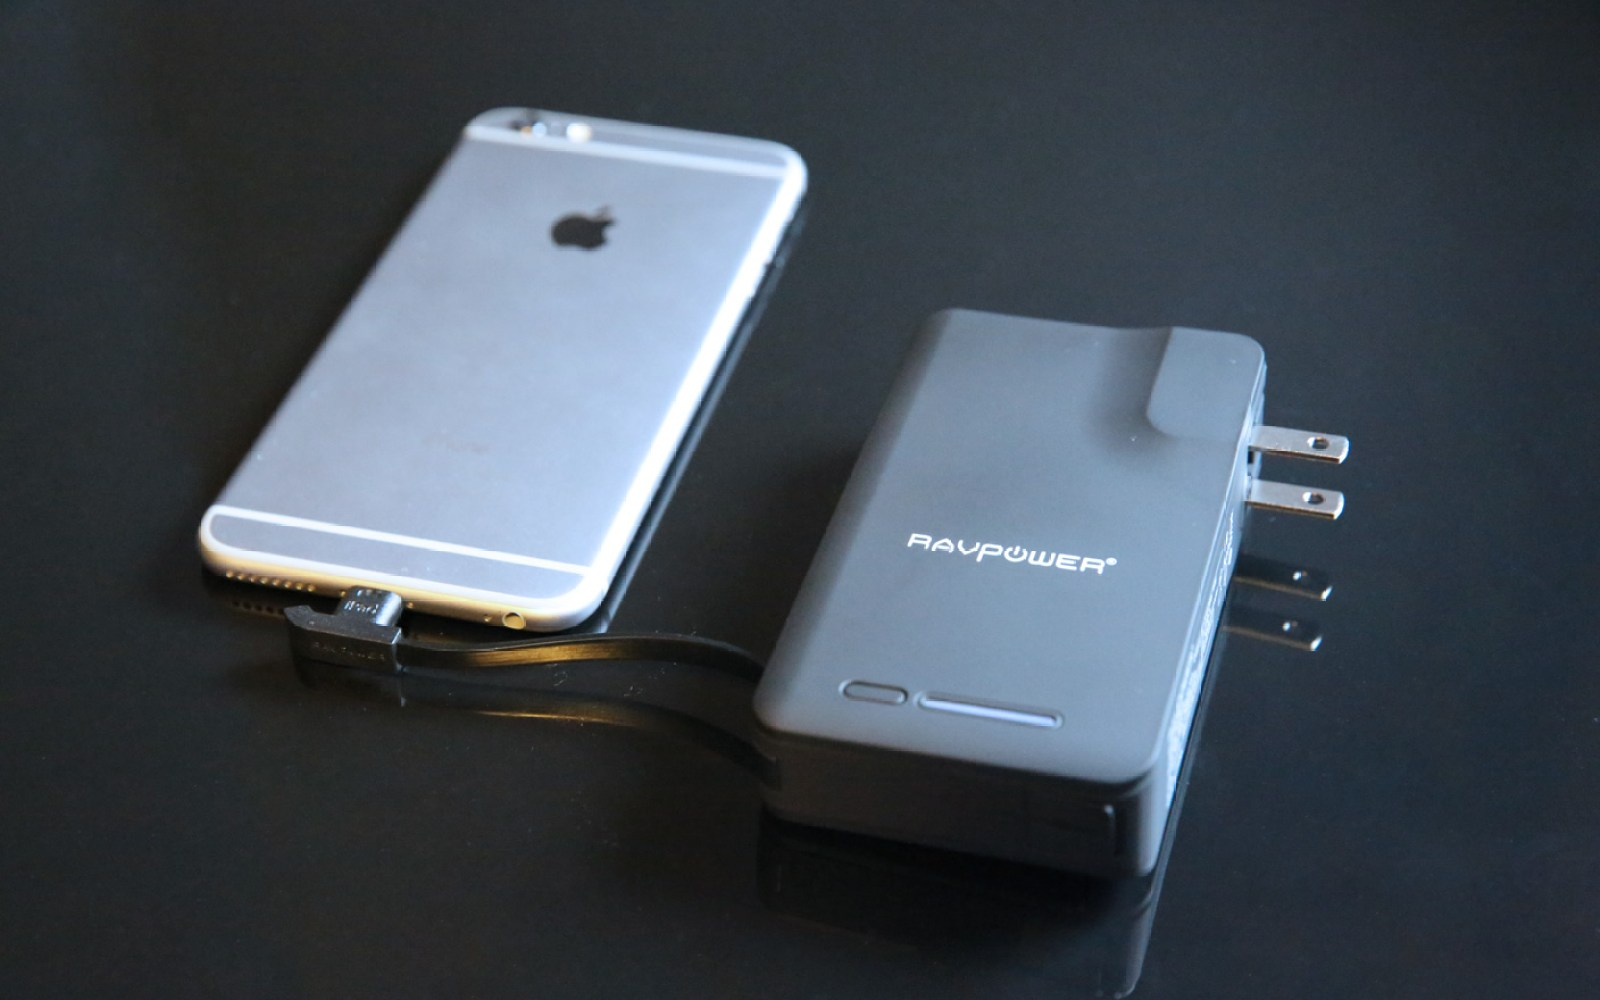 Review: RAVPower's Savior delivers 9000mAh of Apple-certified Lightning battery power at a great price